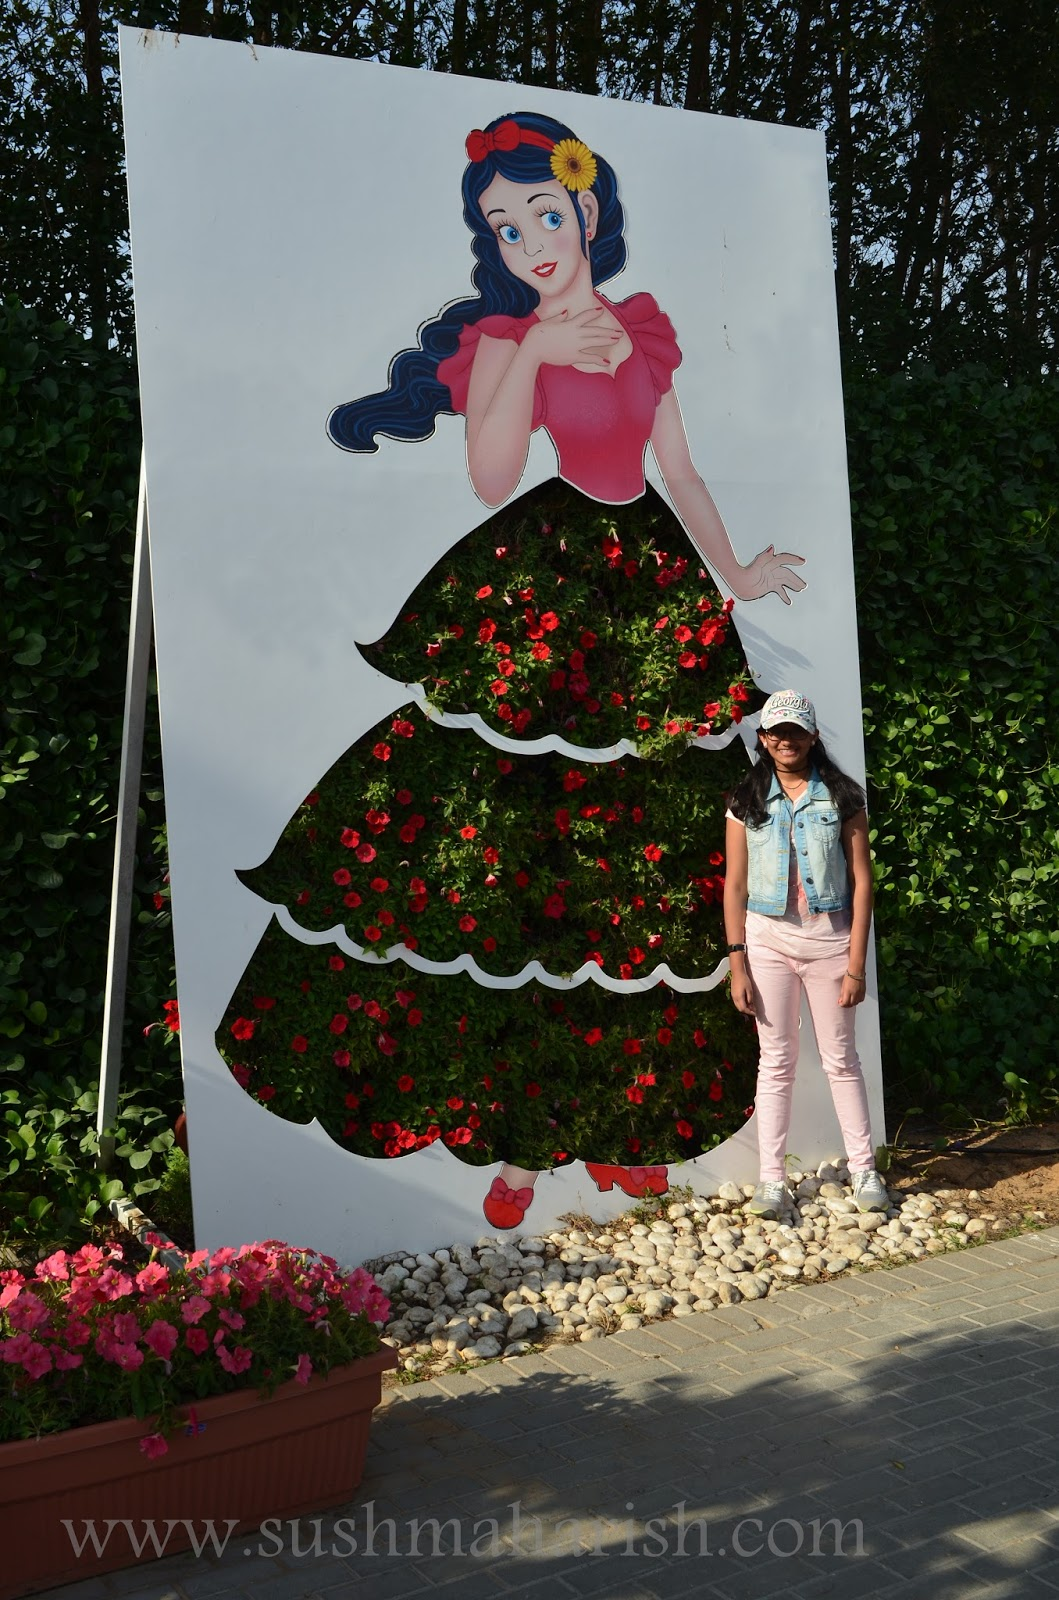 Exploring Beyond The Skyscrapers. Largest Flower Garden Of The World - Miracle Garden Dubai. 32